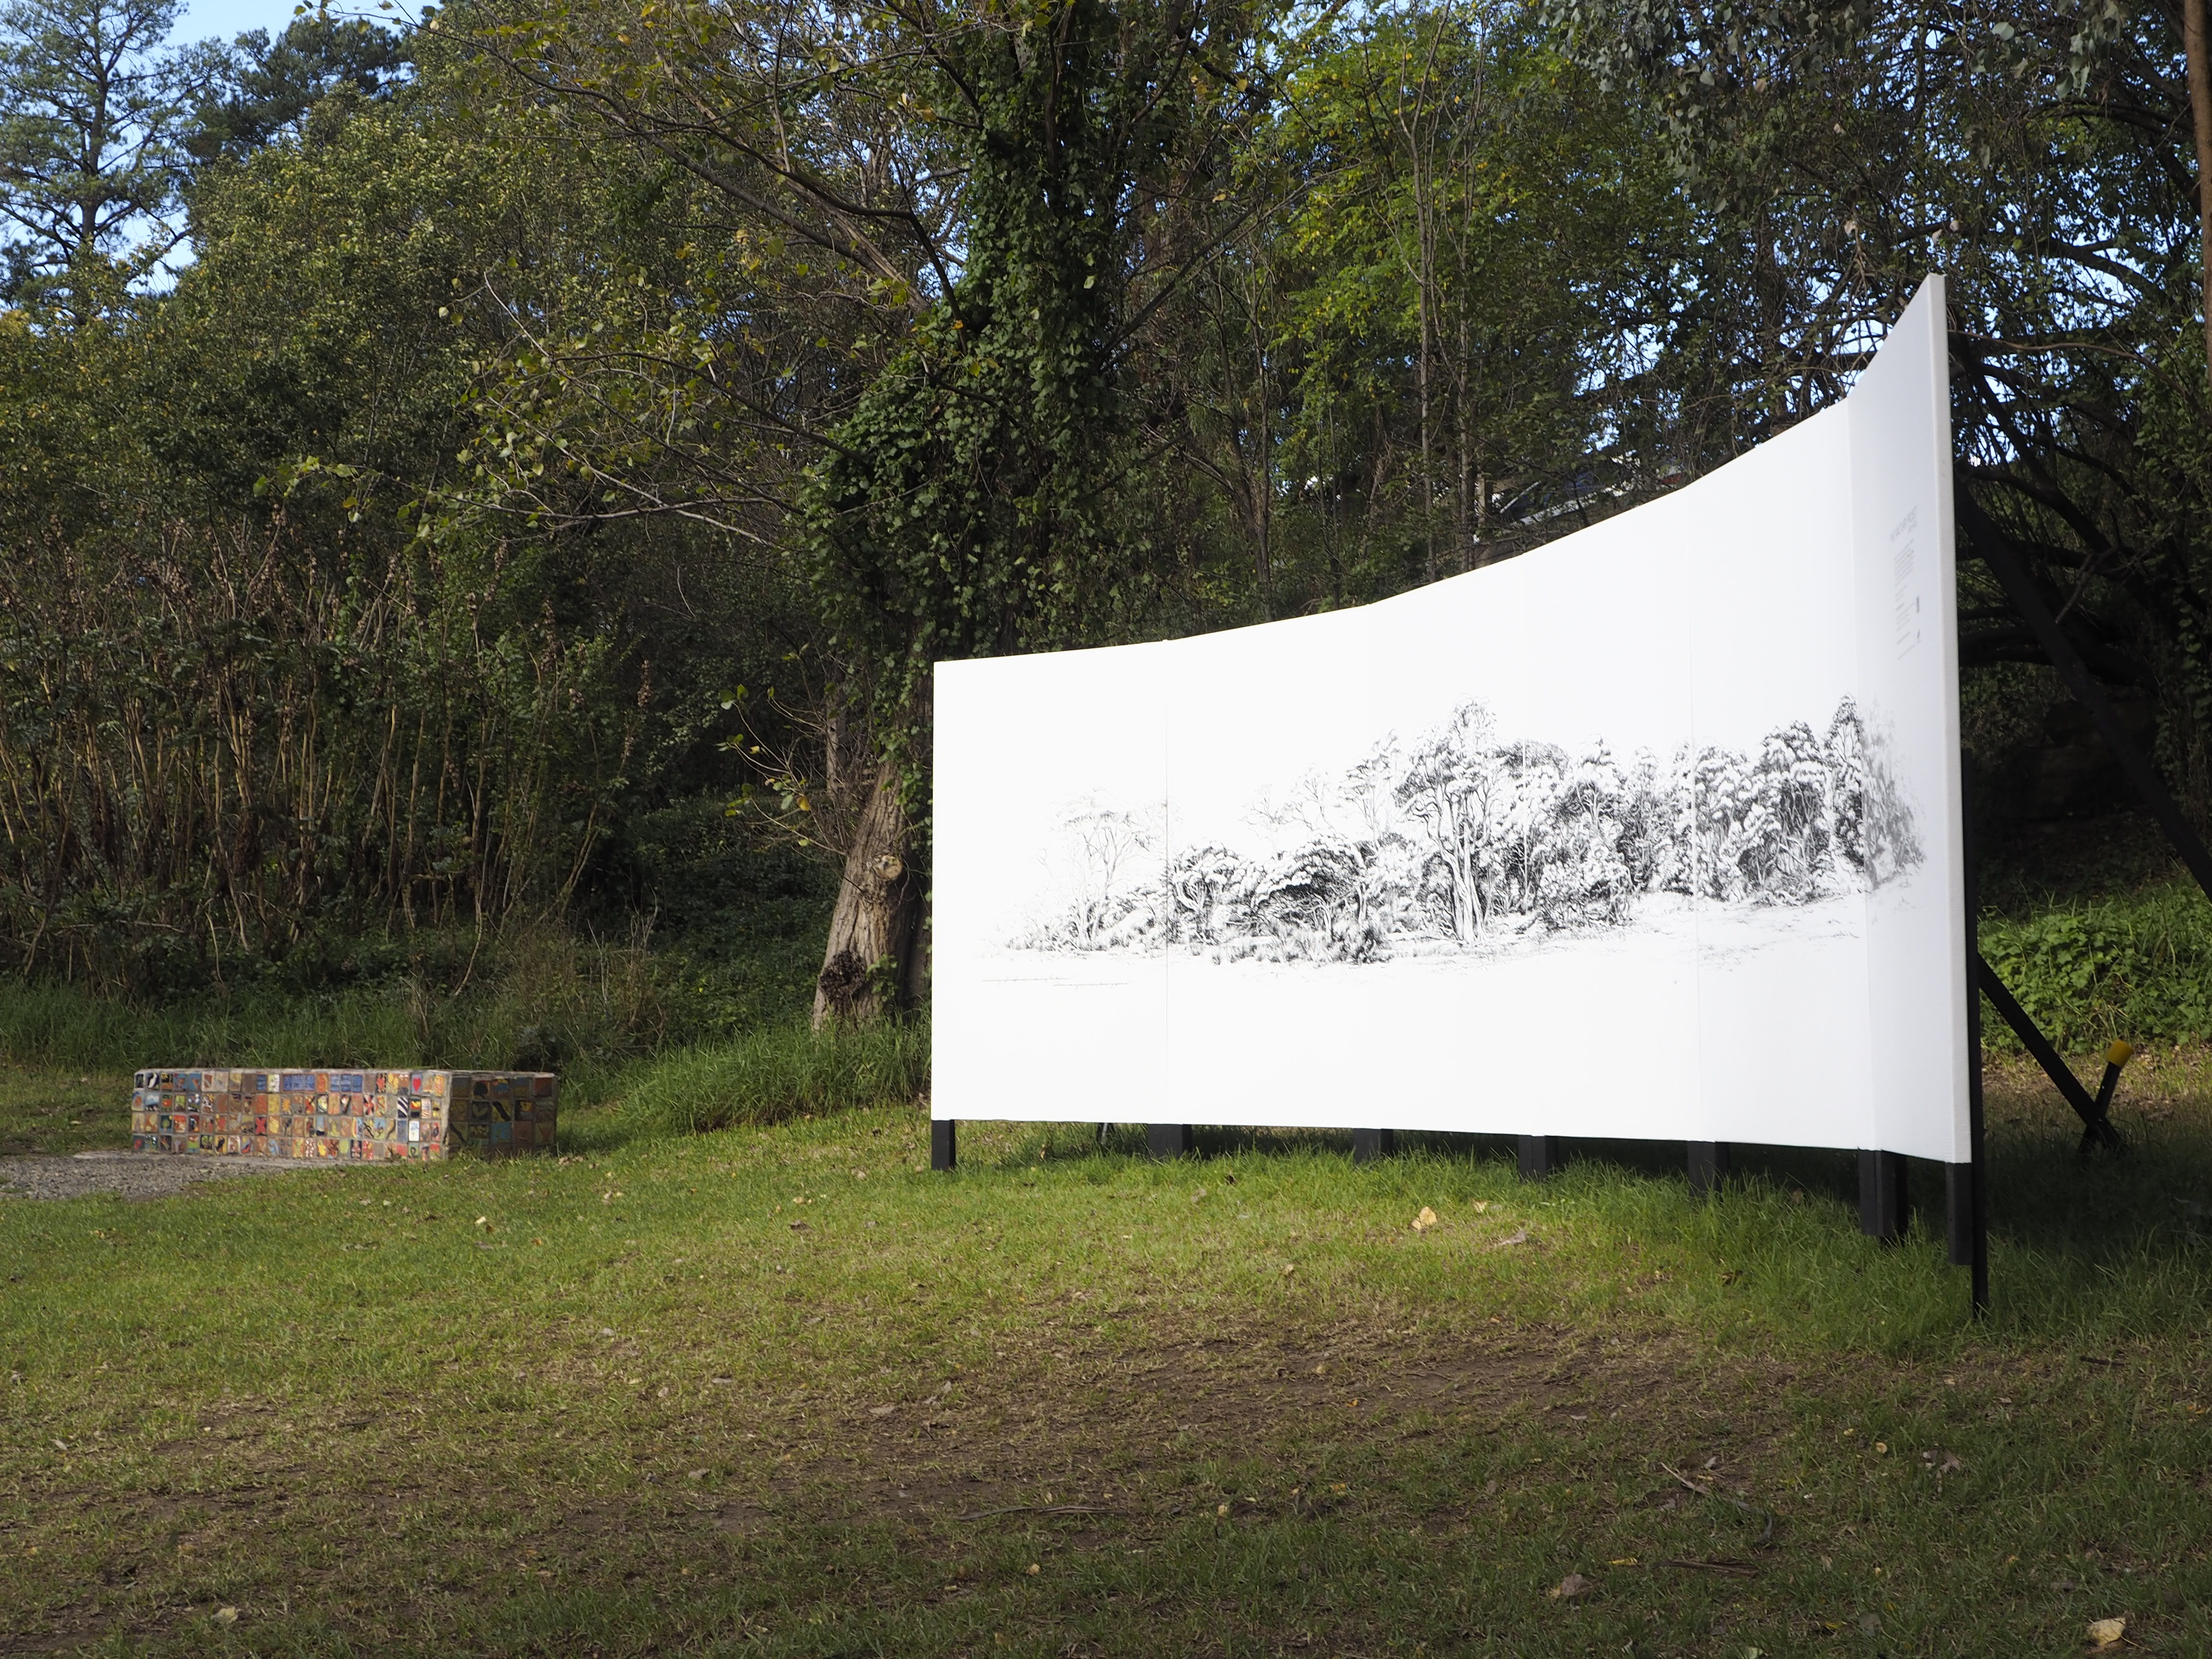 Photograph of a curved white billboard featuring a detailed black landscape drawing installed in parkland